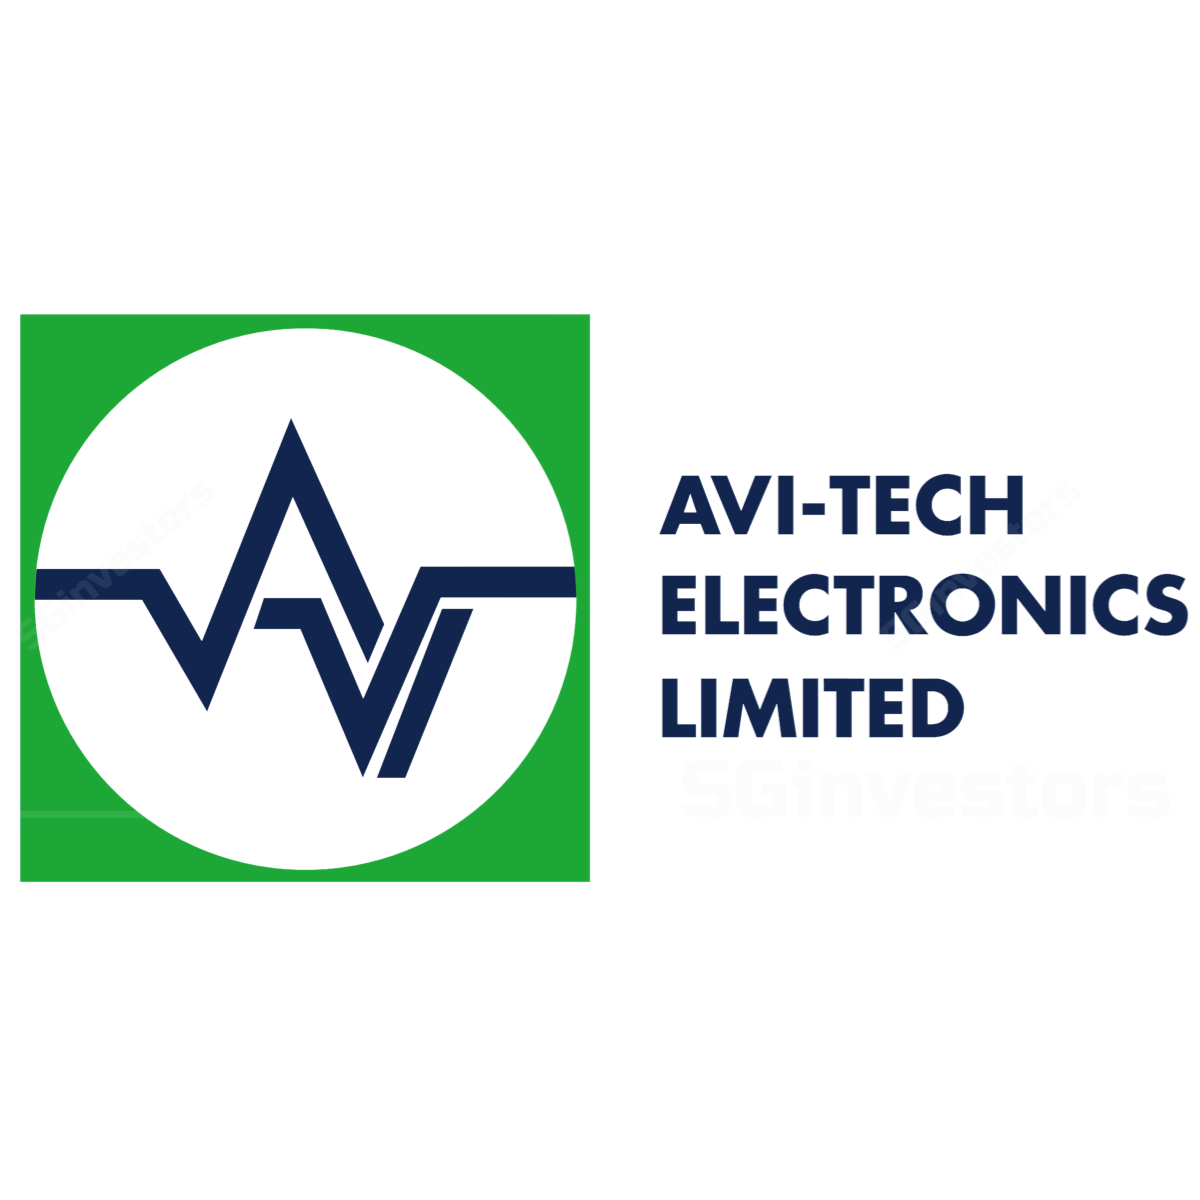 Avi-Tech Electronics - RHB Invest 2017-08-21: Positive Outlook Ahead